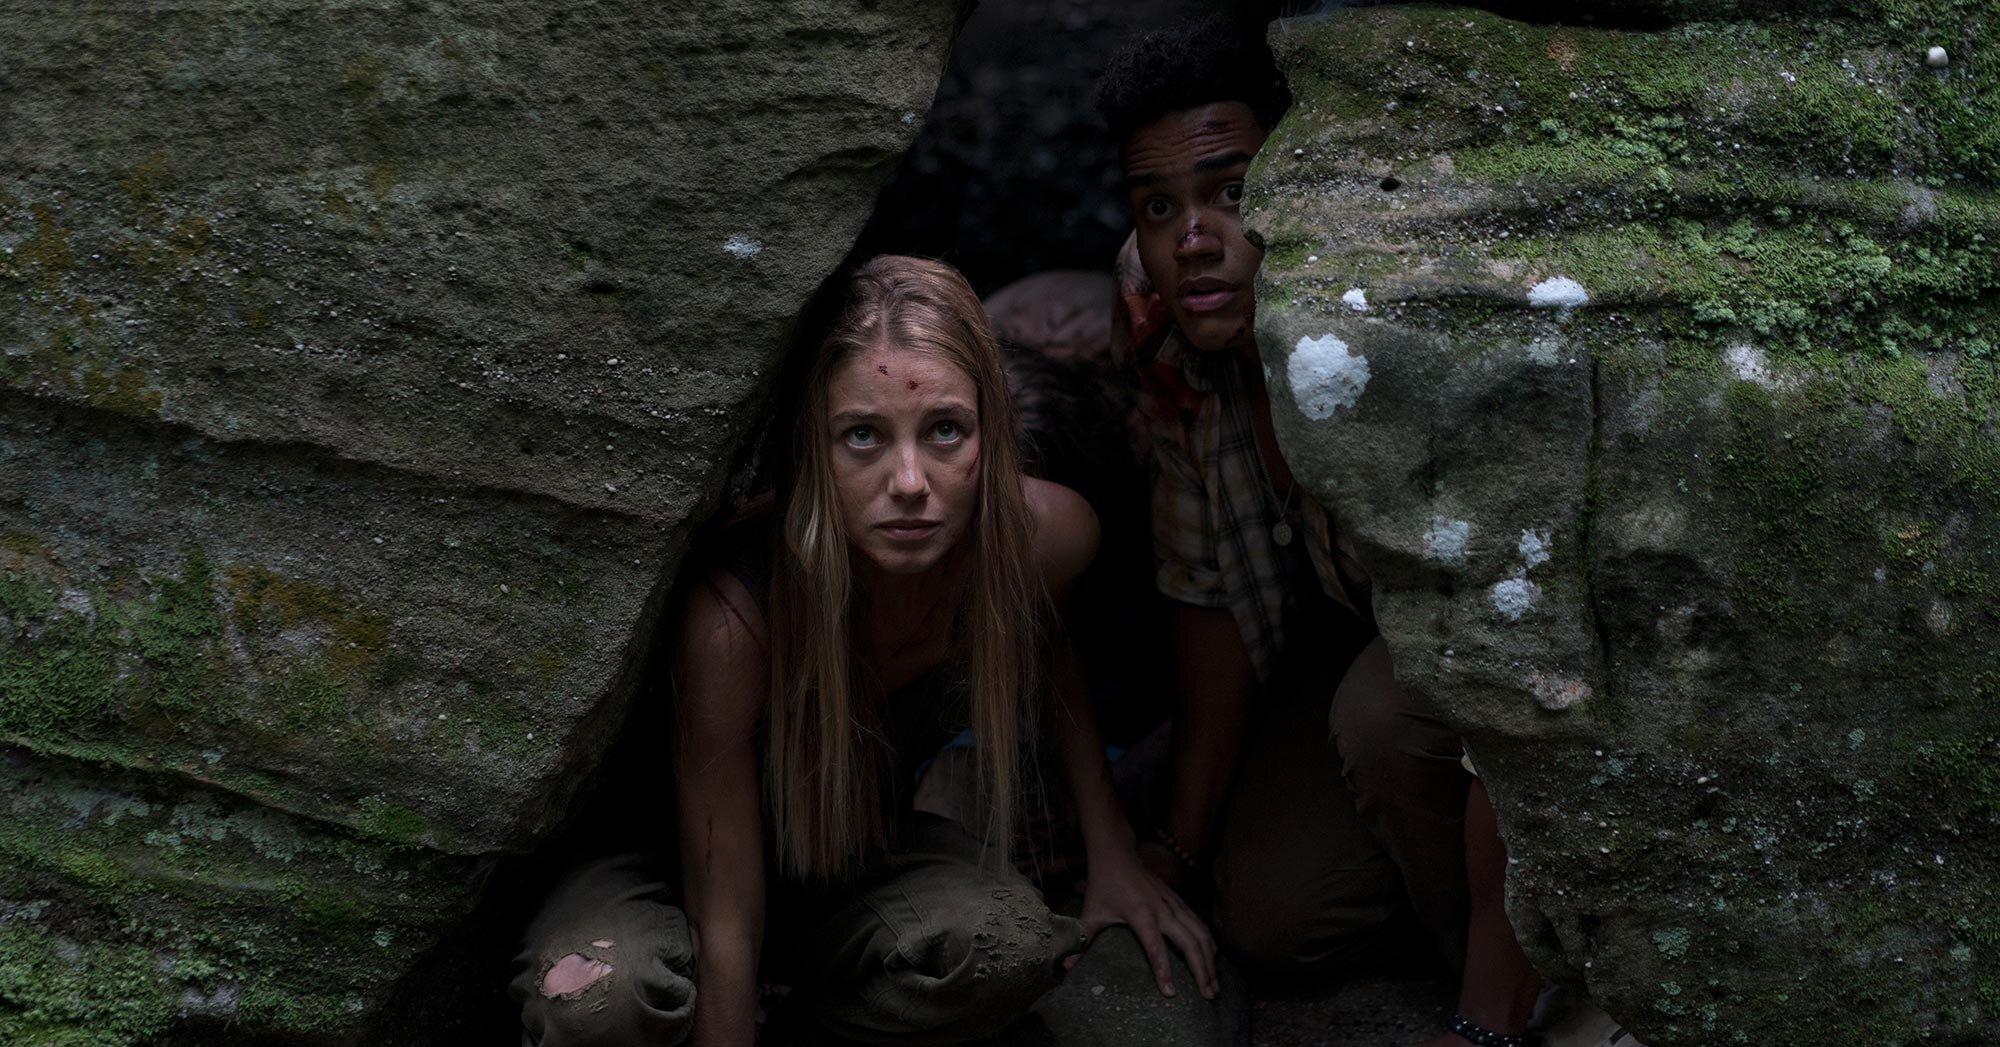 Get lost in the trailer for the new Wrong Turn movie | EW.com